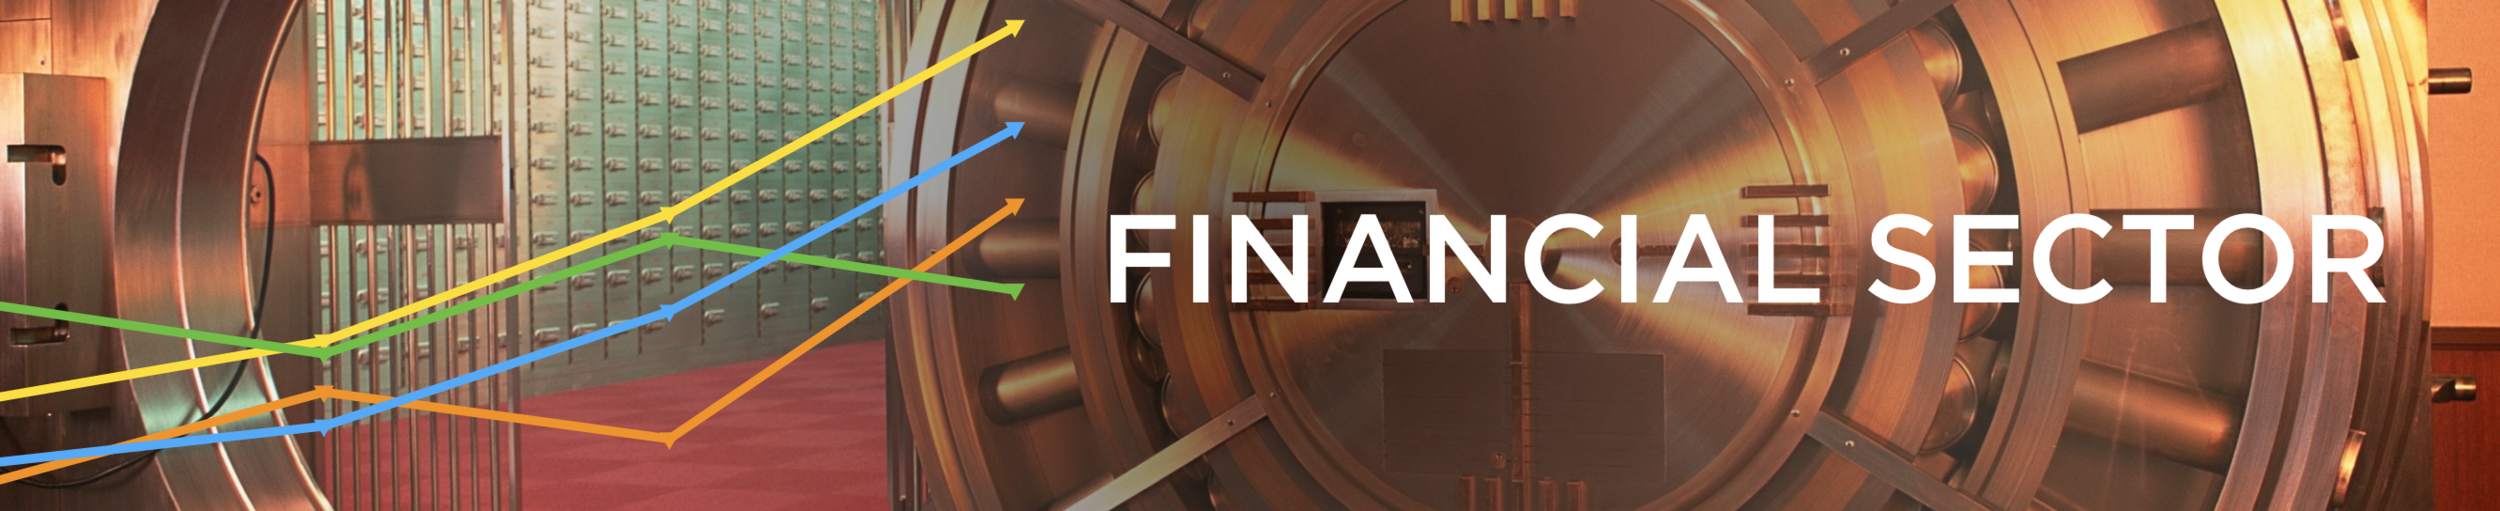 Banner - Financial Sector (Version 2).png